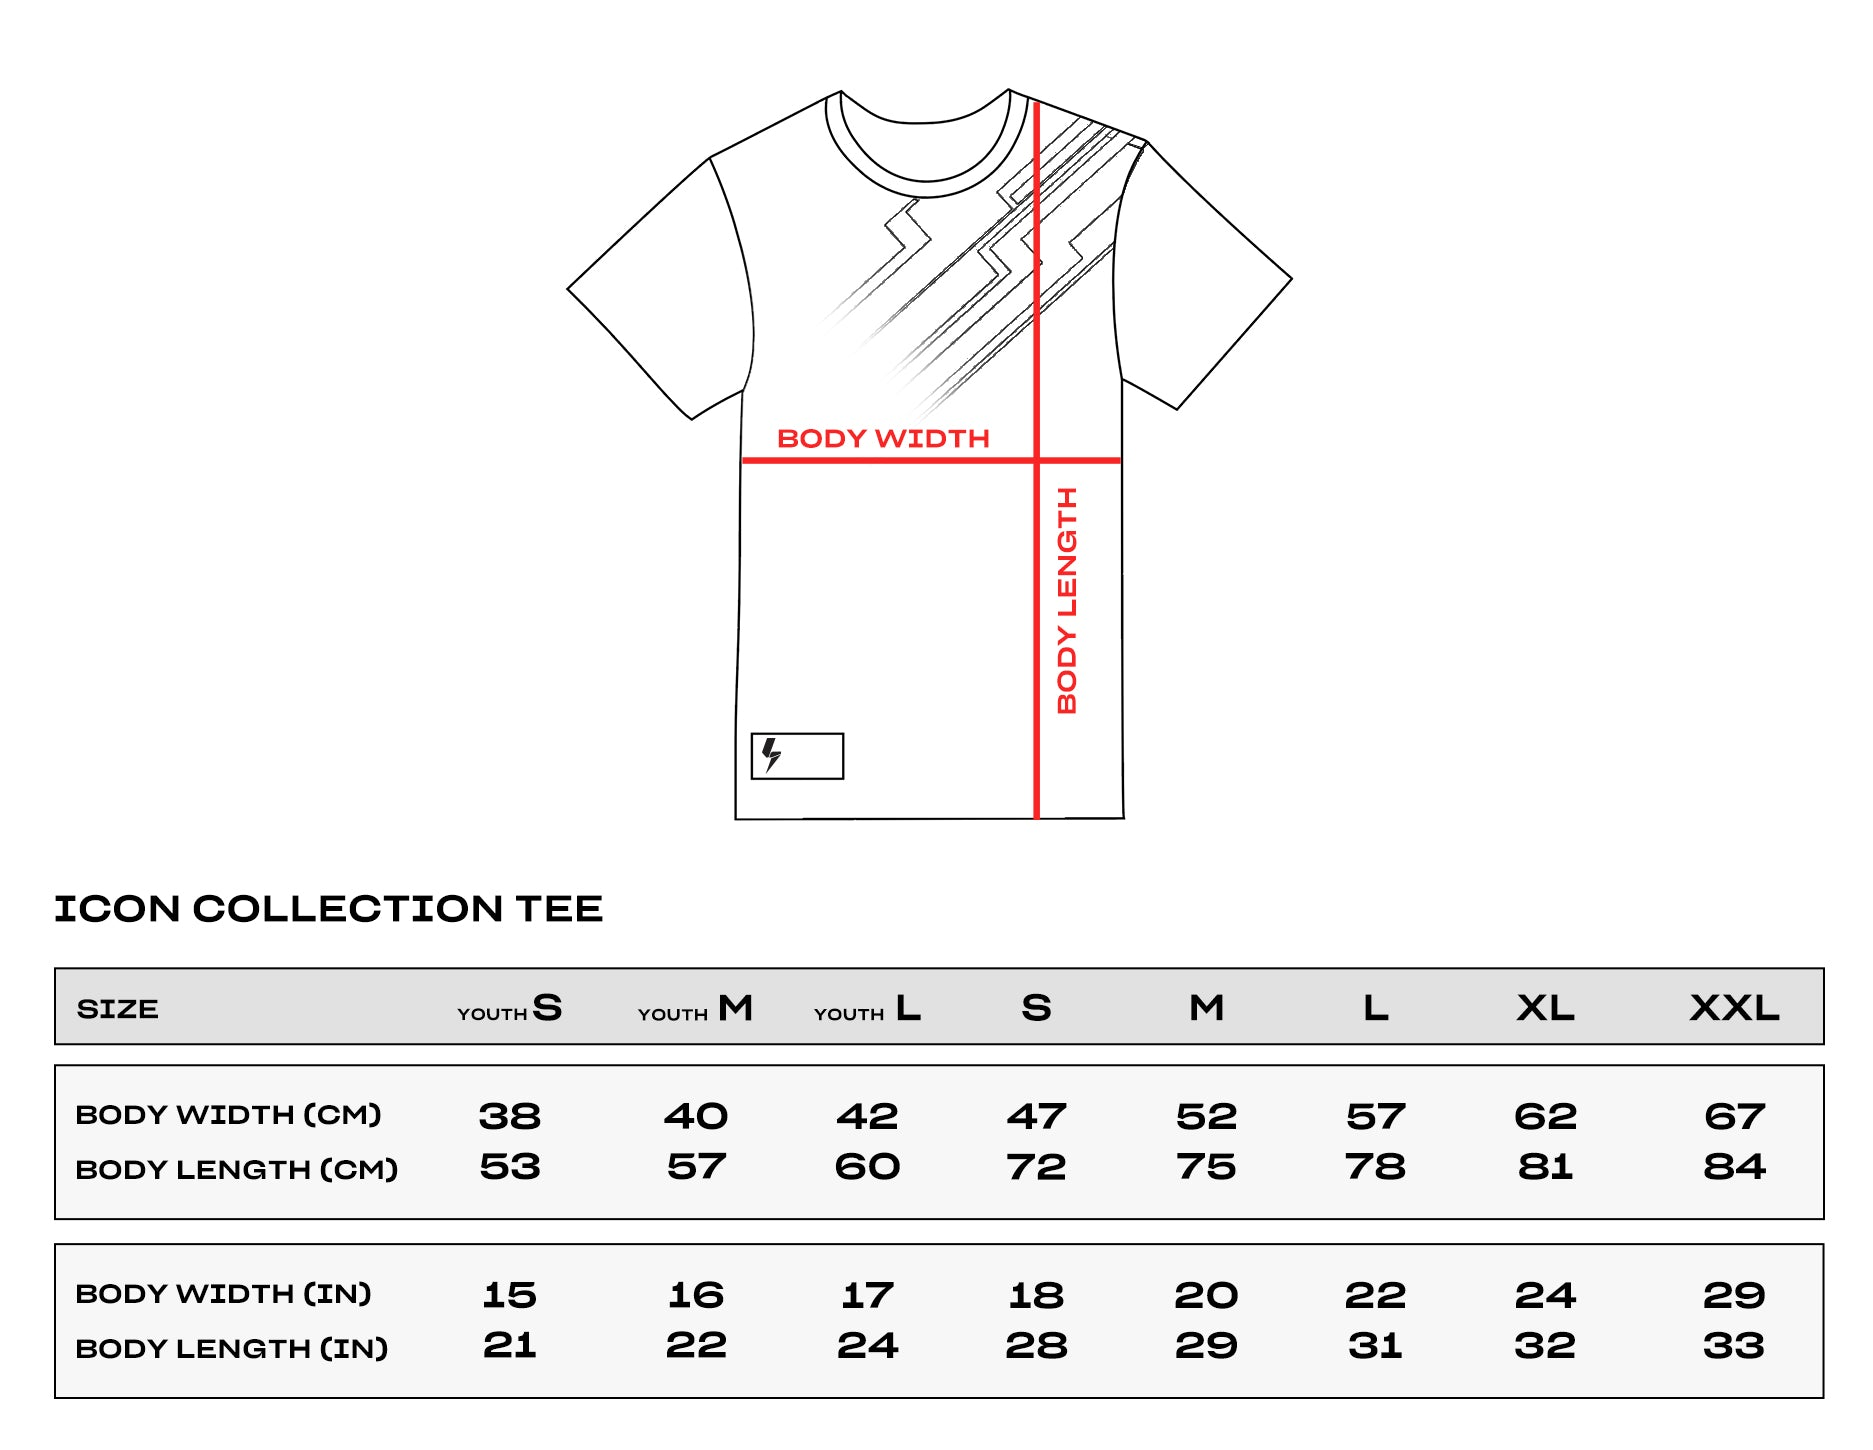 Icon Collection Size Chart Tee